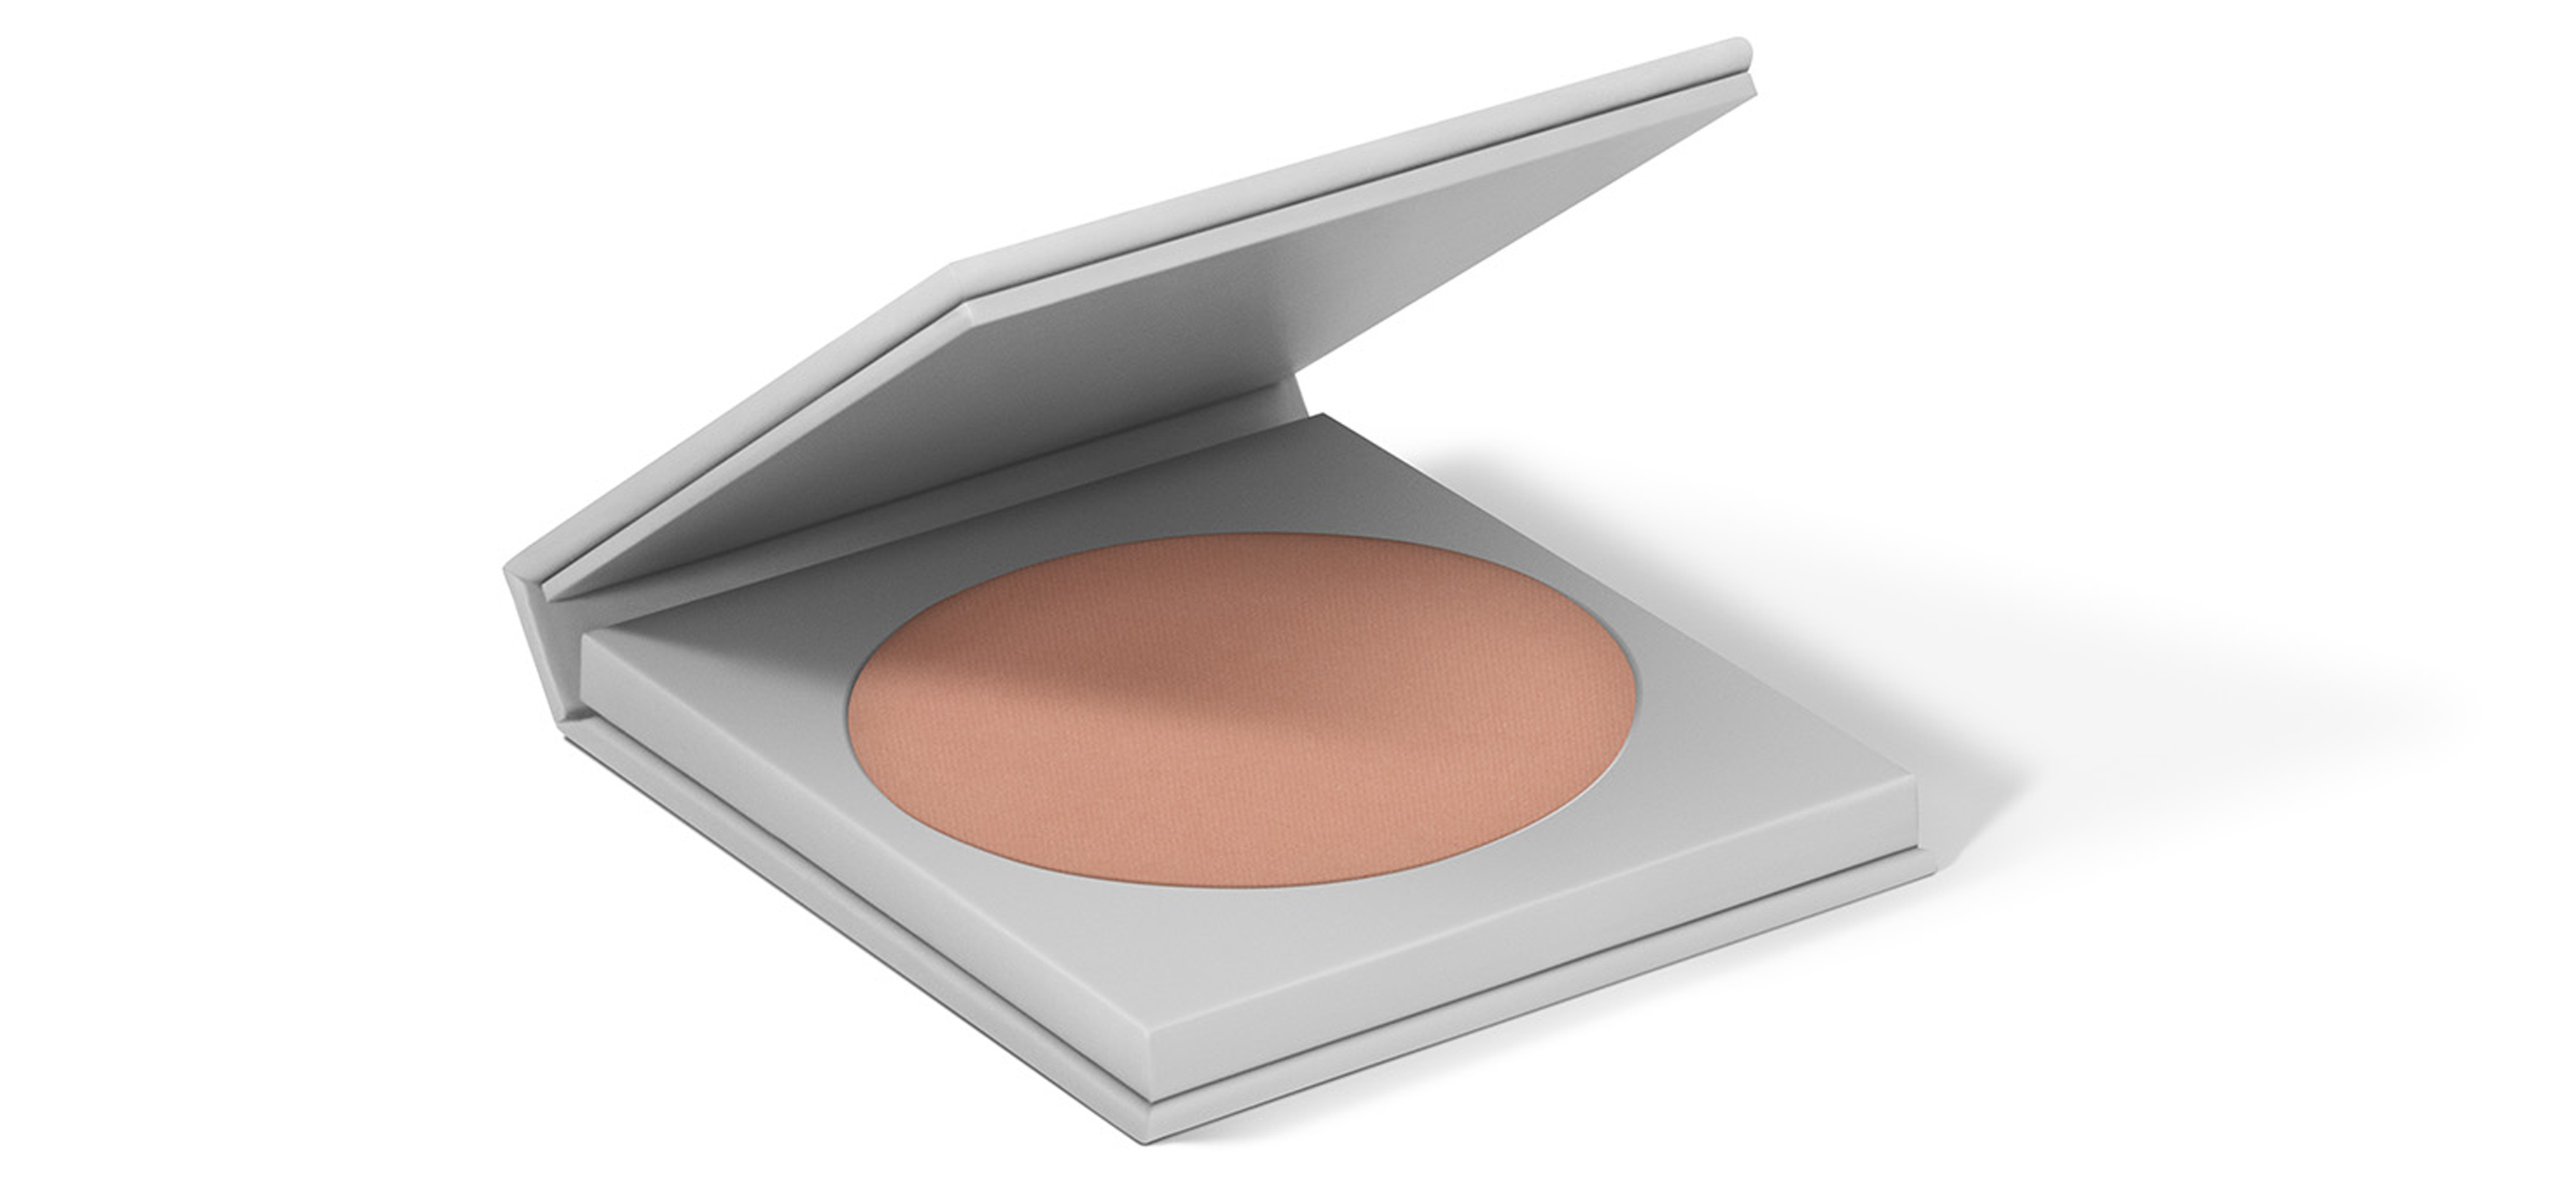 Miild Mineral Blush in Cherise Splendid